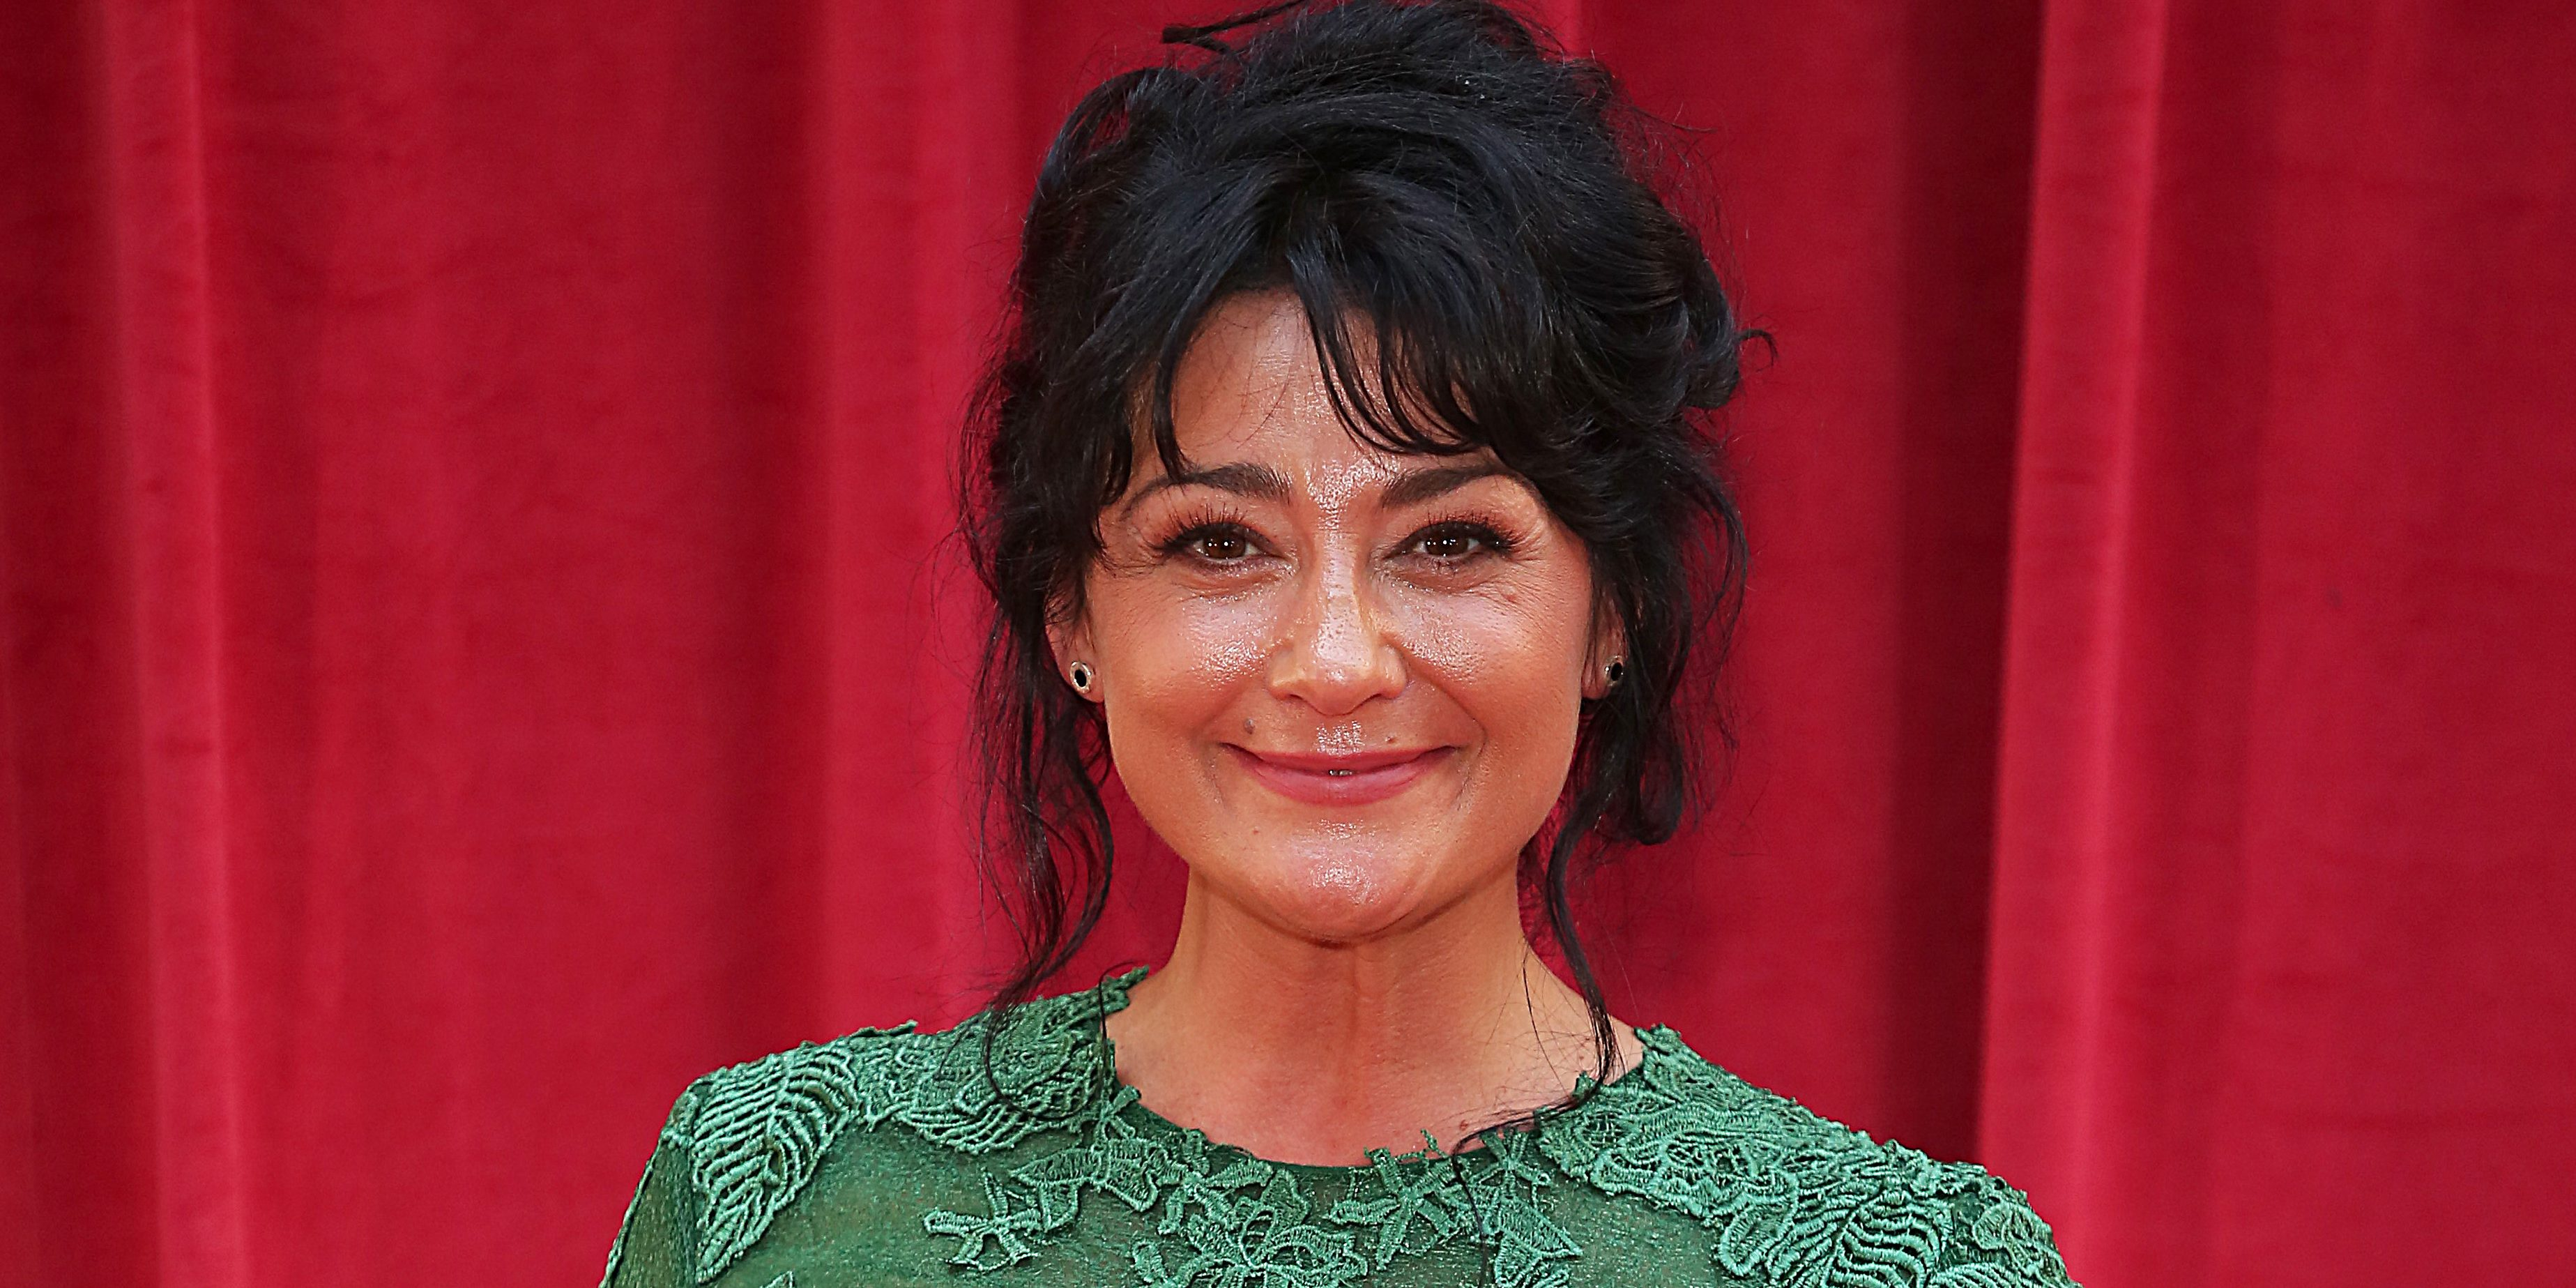 Emmerdale's Natalie J Robb explains why she's still single